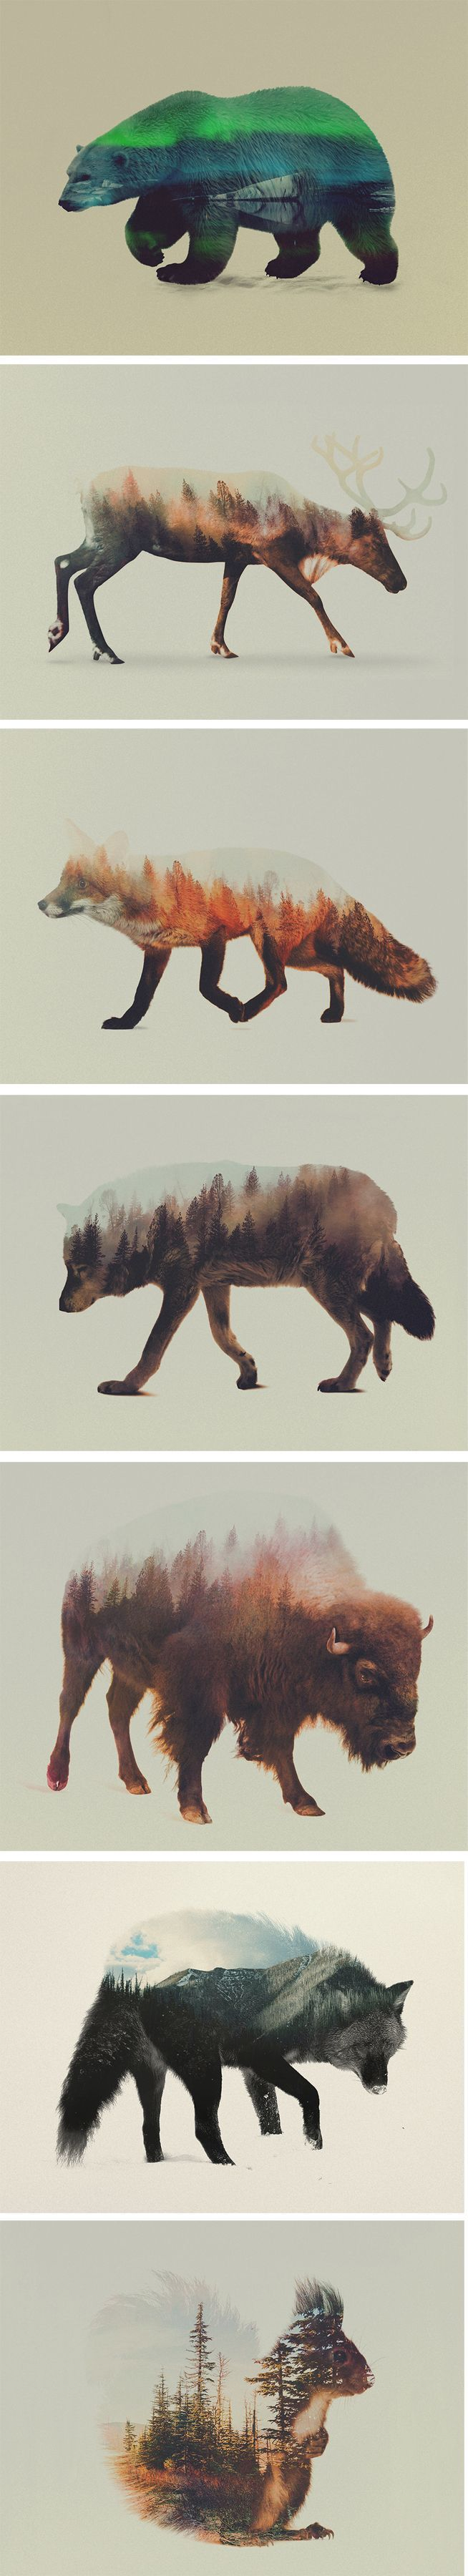 Norwegian visual artist Andreas Lie merges verdant landscapes and photographs of animals to creates subtle double exposure